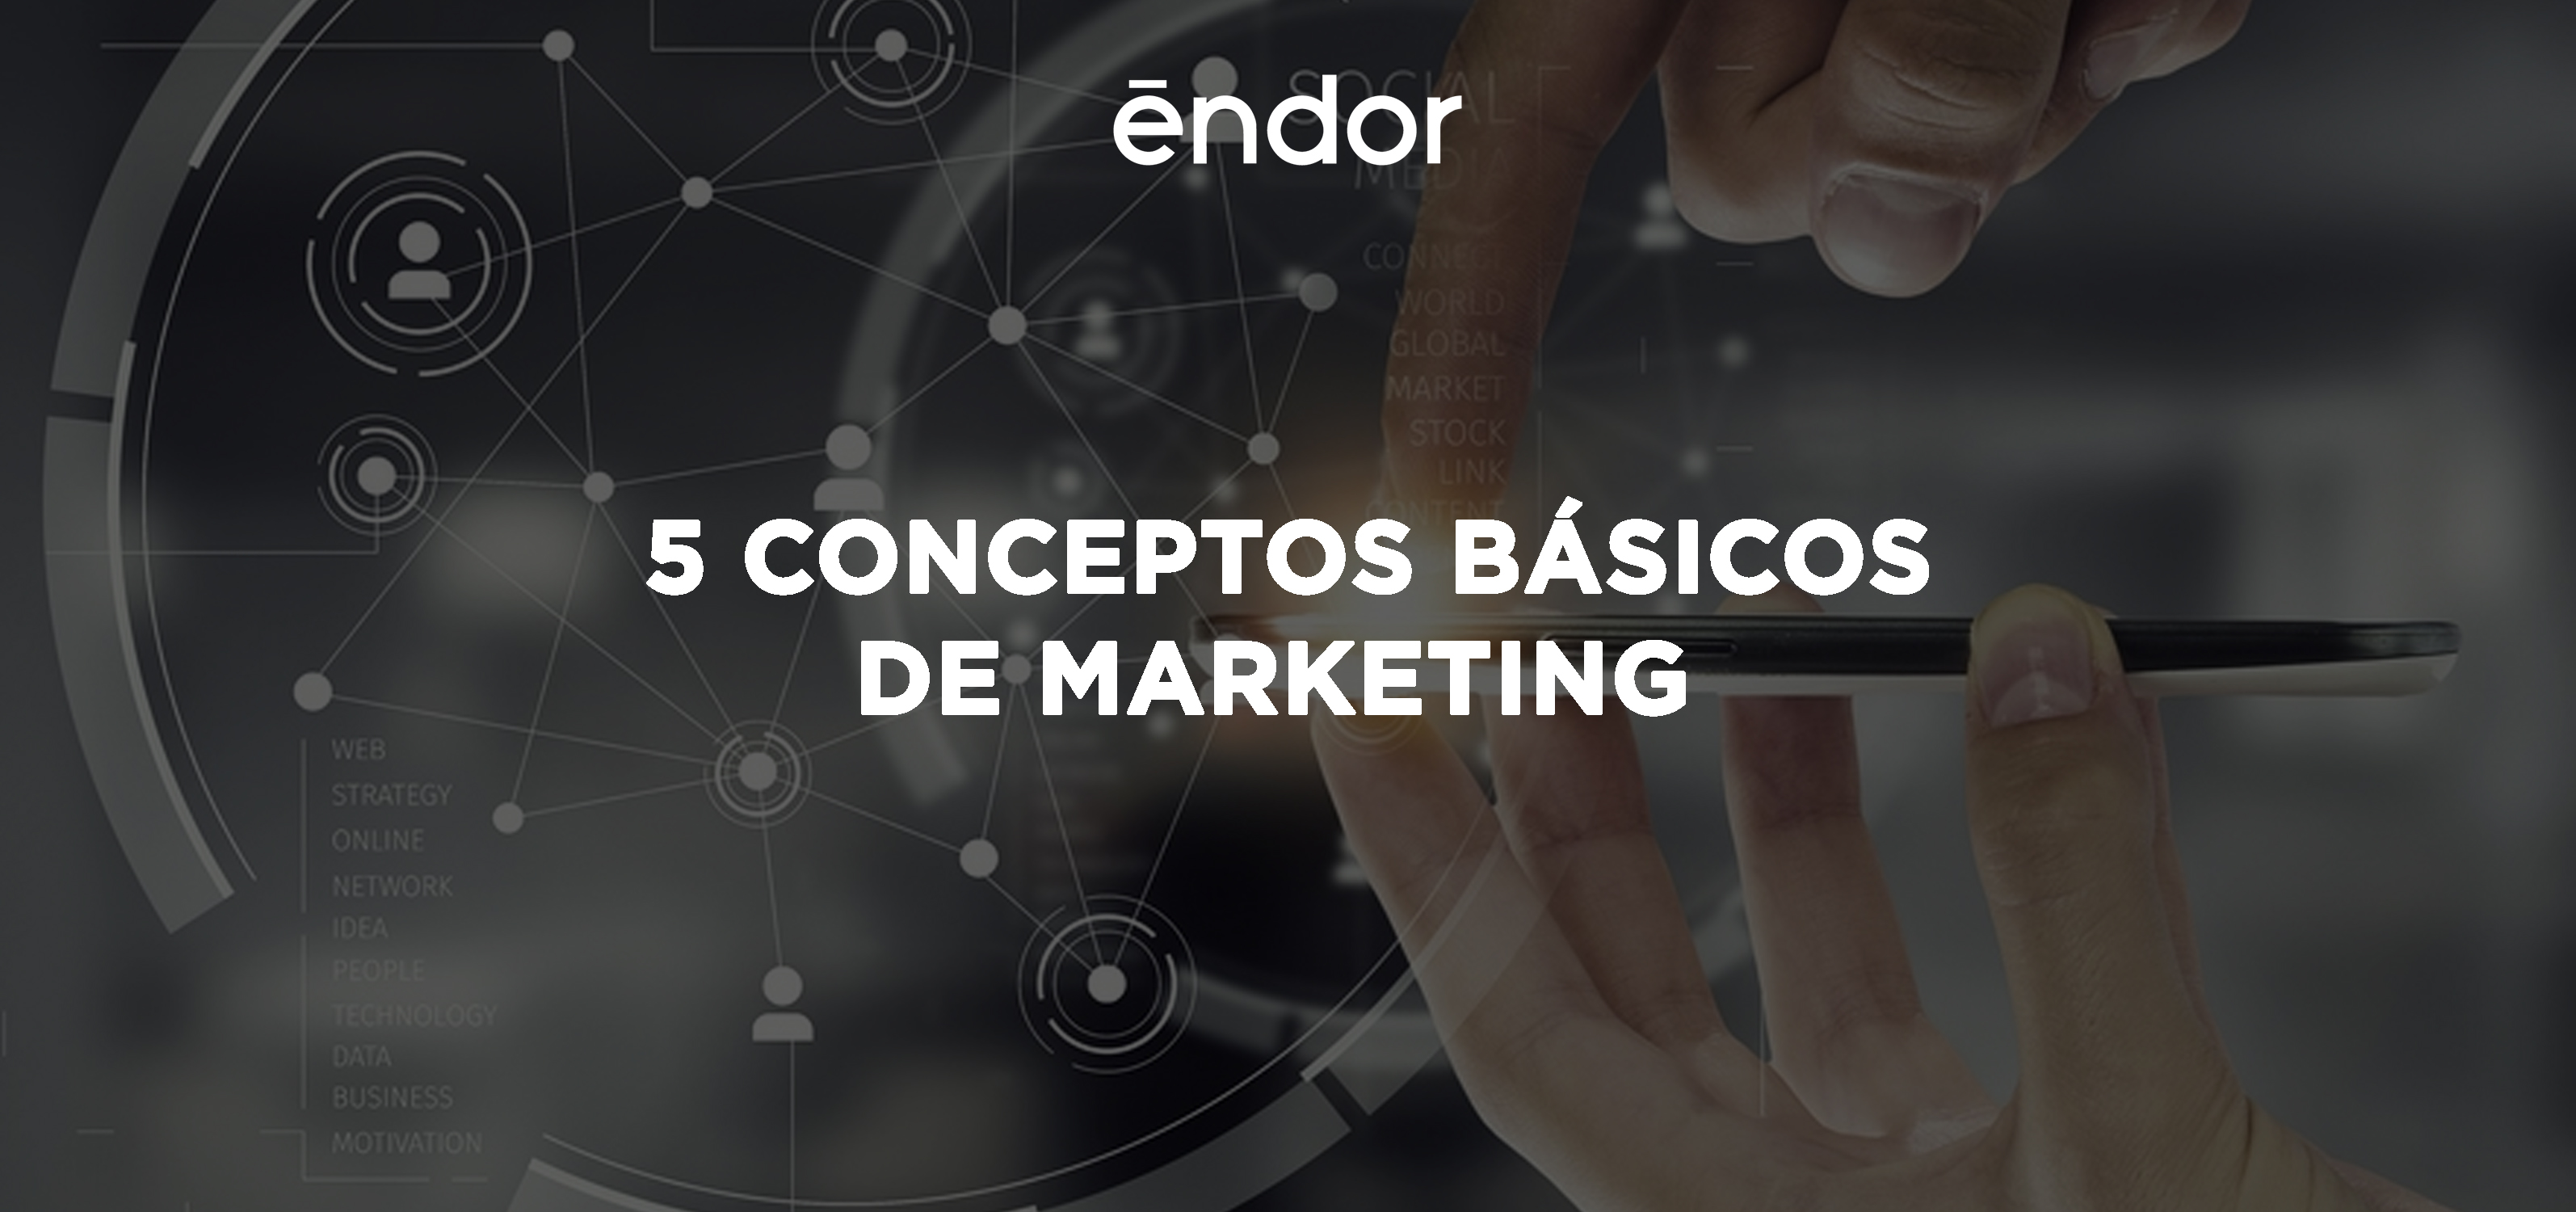 5 Conceptos Básicos de Marketing